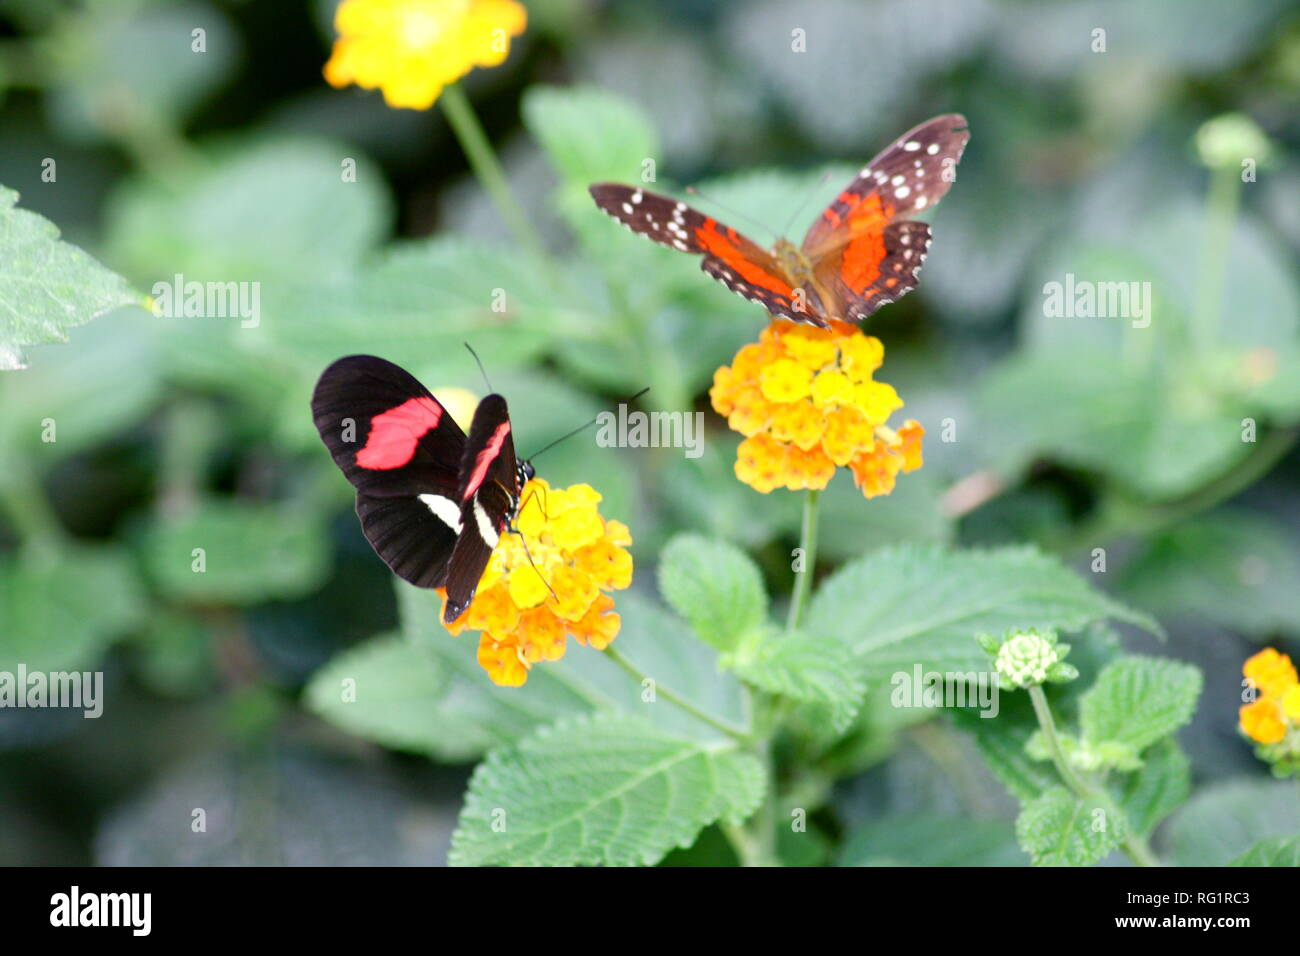 A very nice colorful butterfly - Stock Image